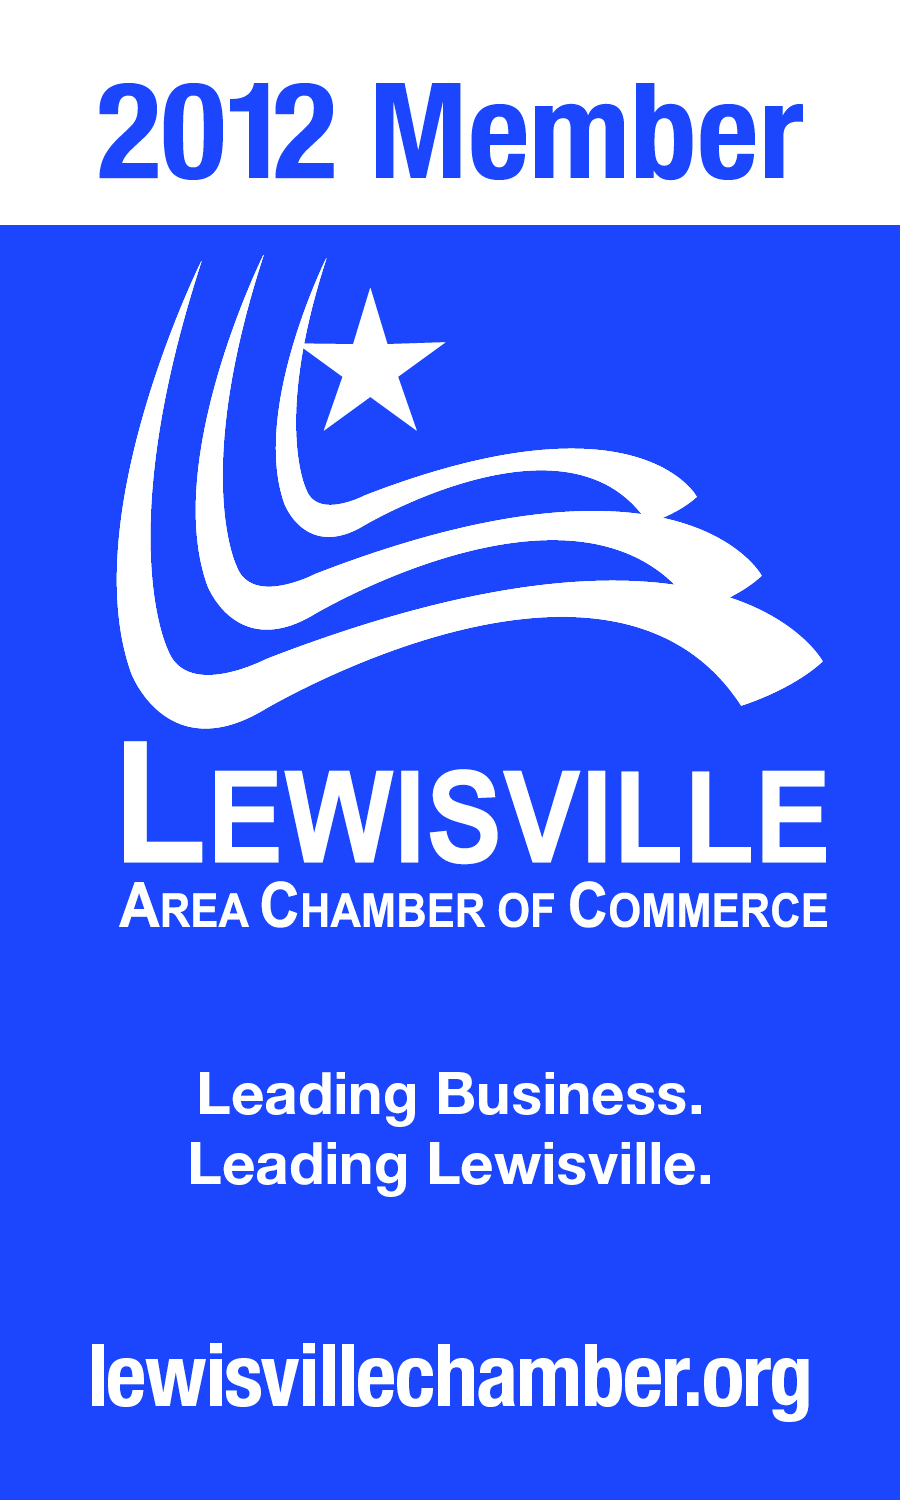 Proud Member of the Lewisville Area Chamber of Commerce